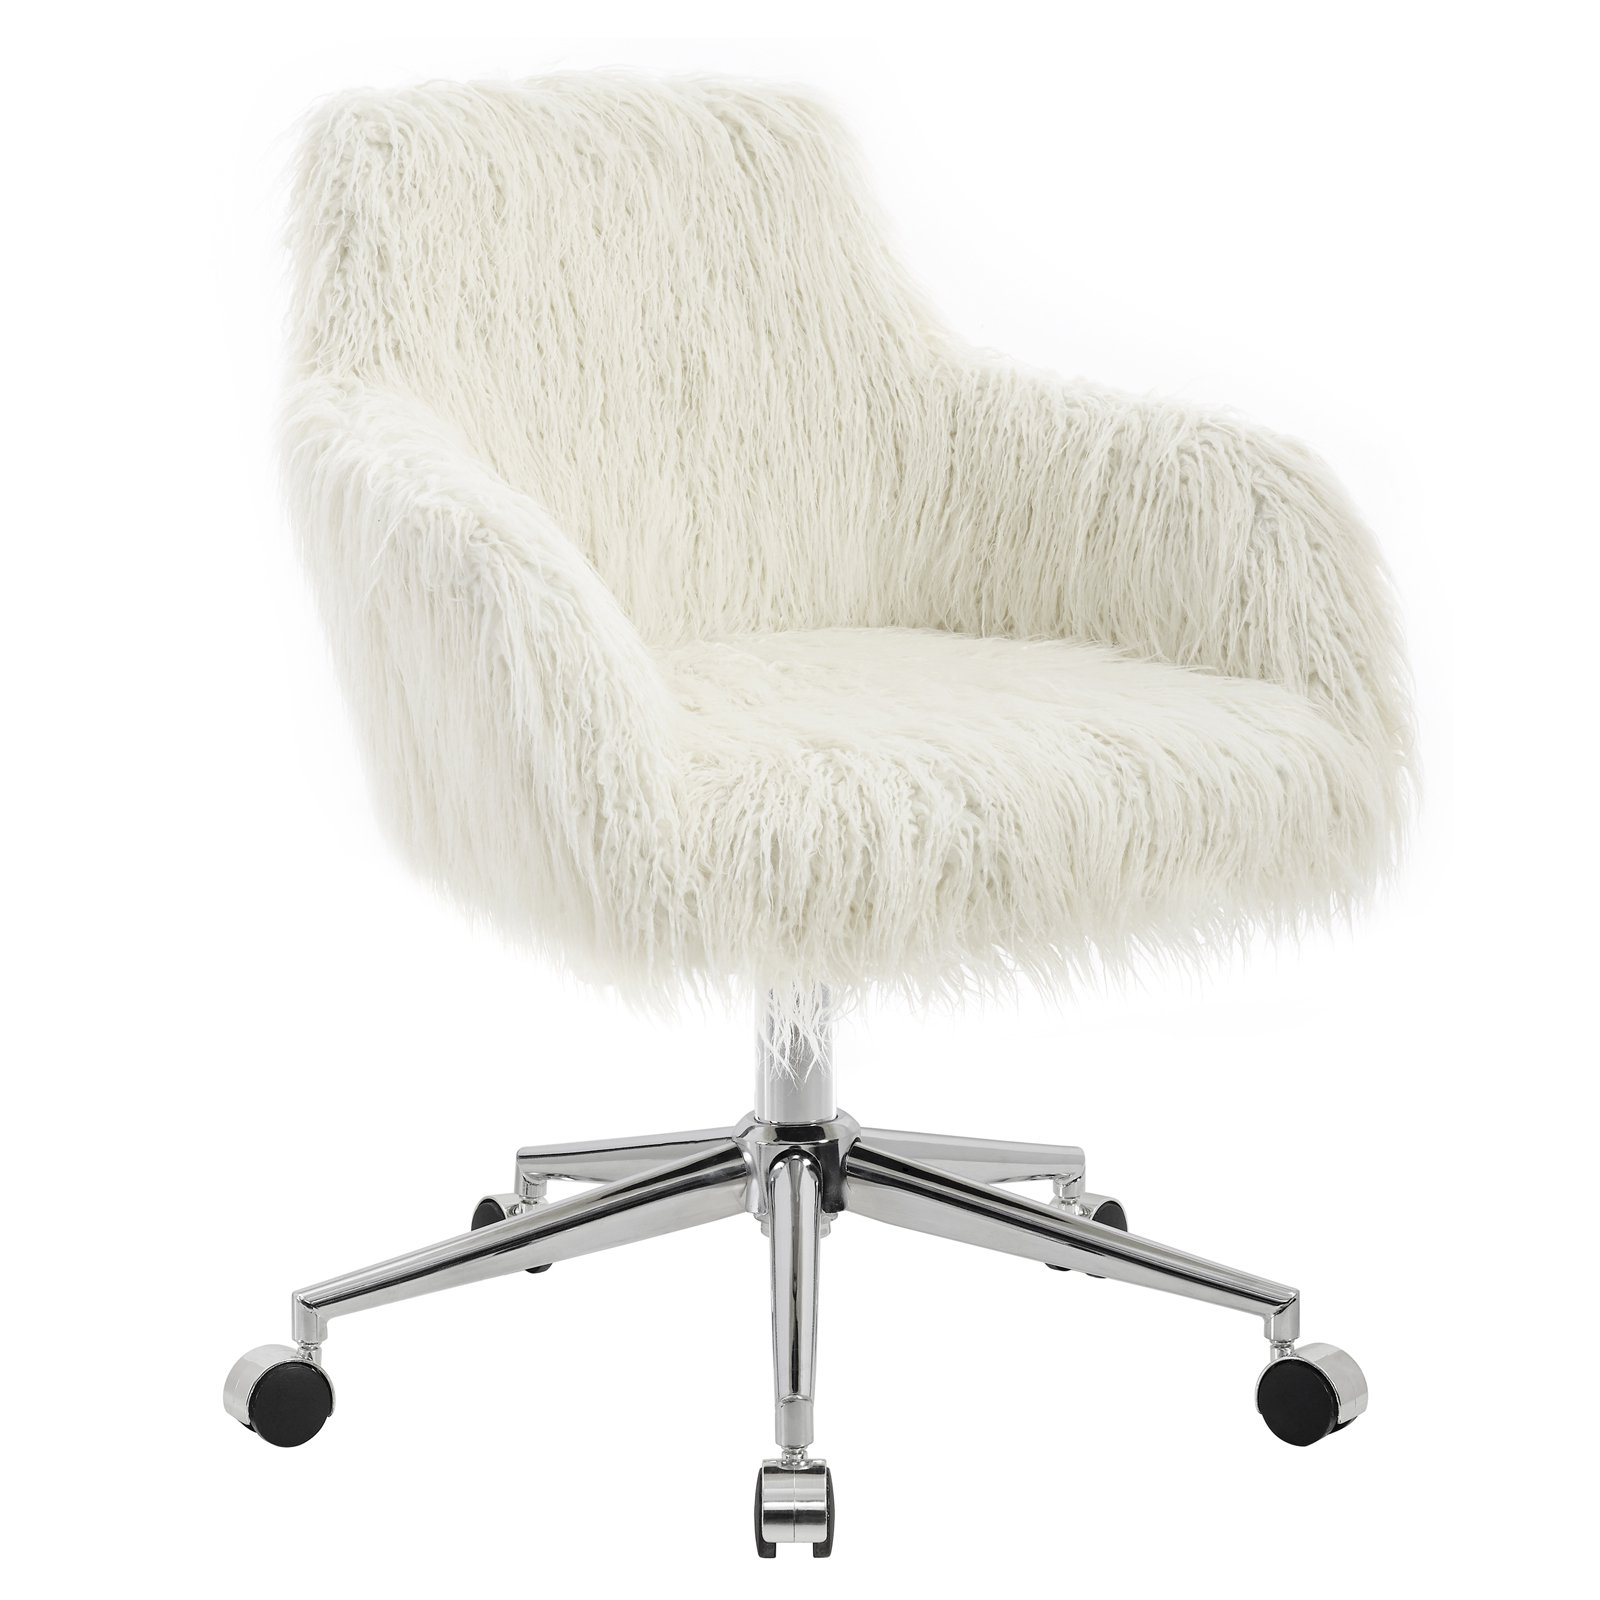 Linon Fiona Faux Fur Office Chair1620 in Adjustable